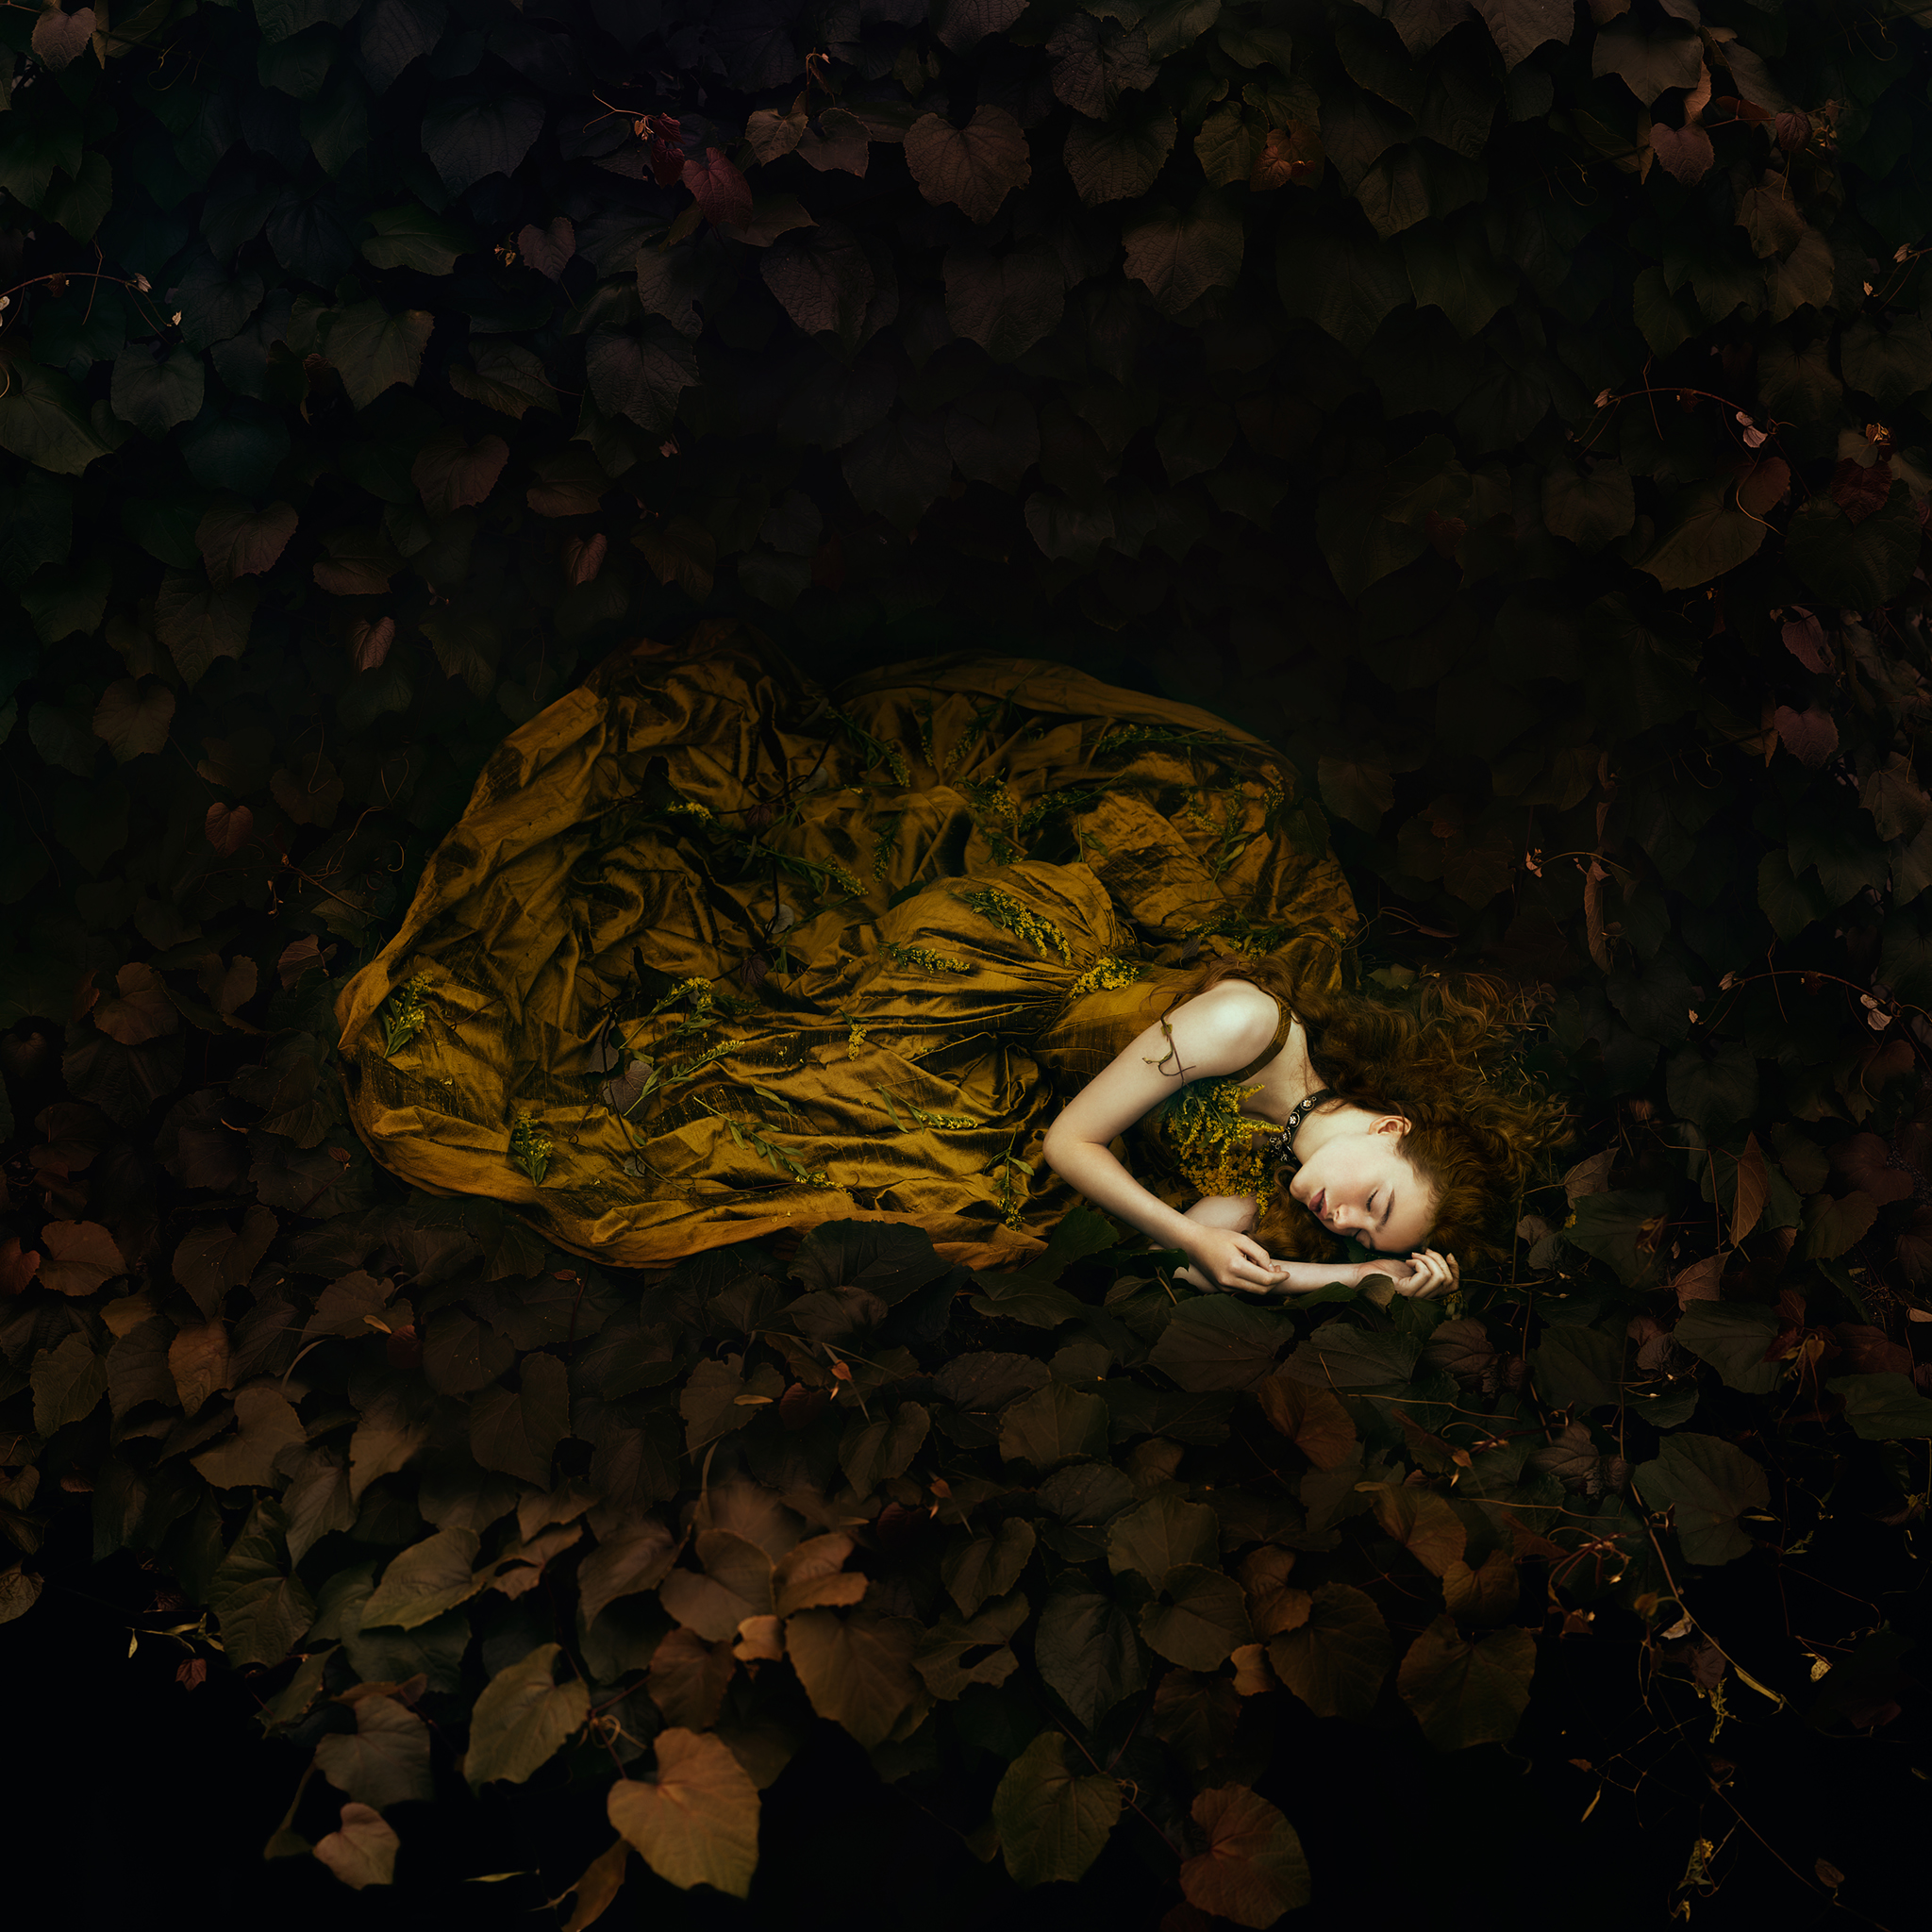 Wild Honey   -   Bella Kotak.  Limited edition 60 x 60cm print with border- 1 of 25. £180 - print only. To order contact:  info@elementstudios.co.uk